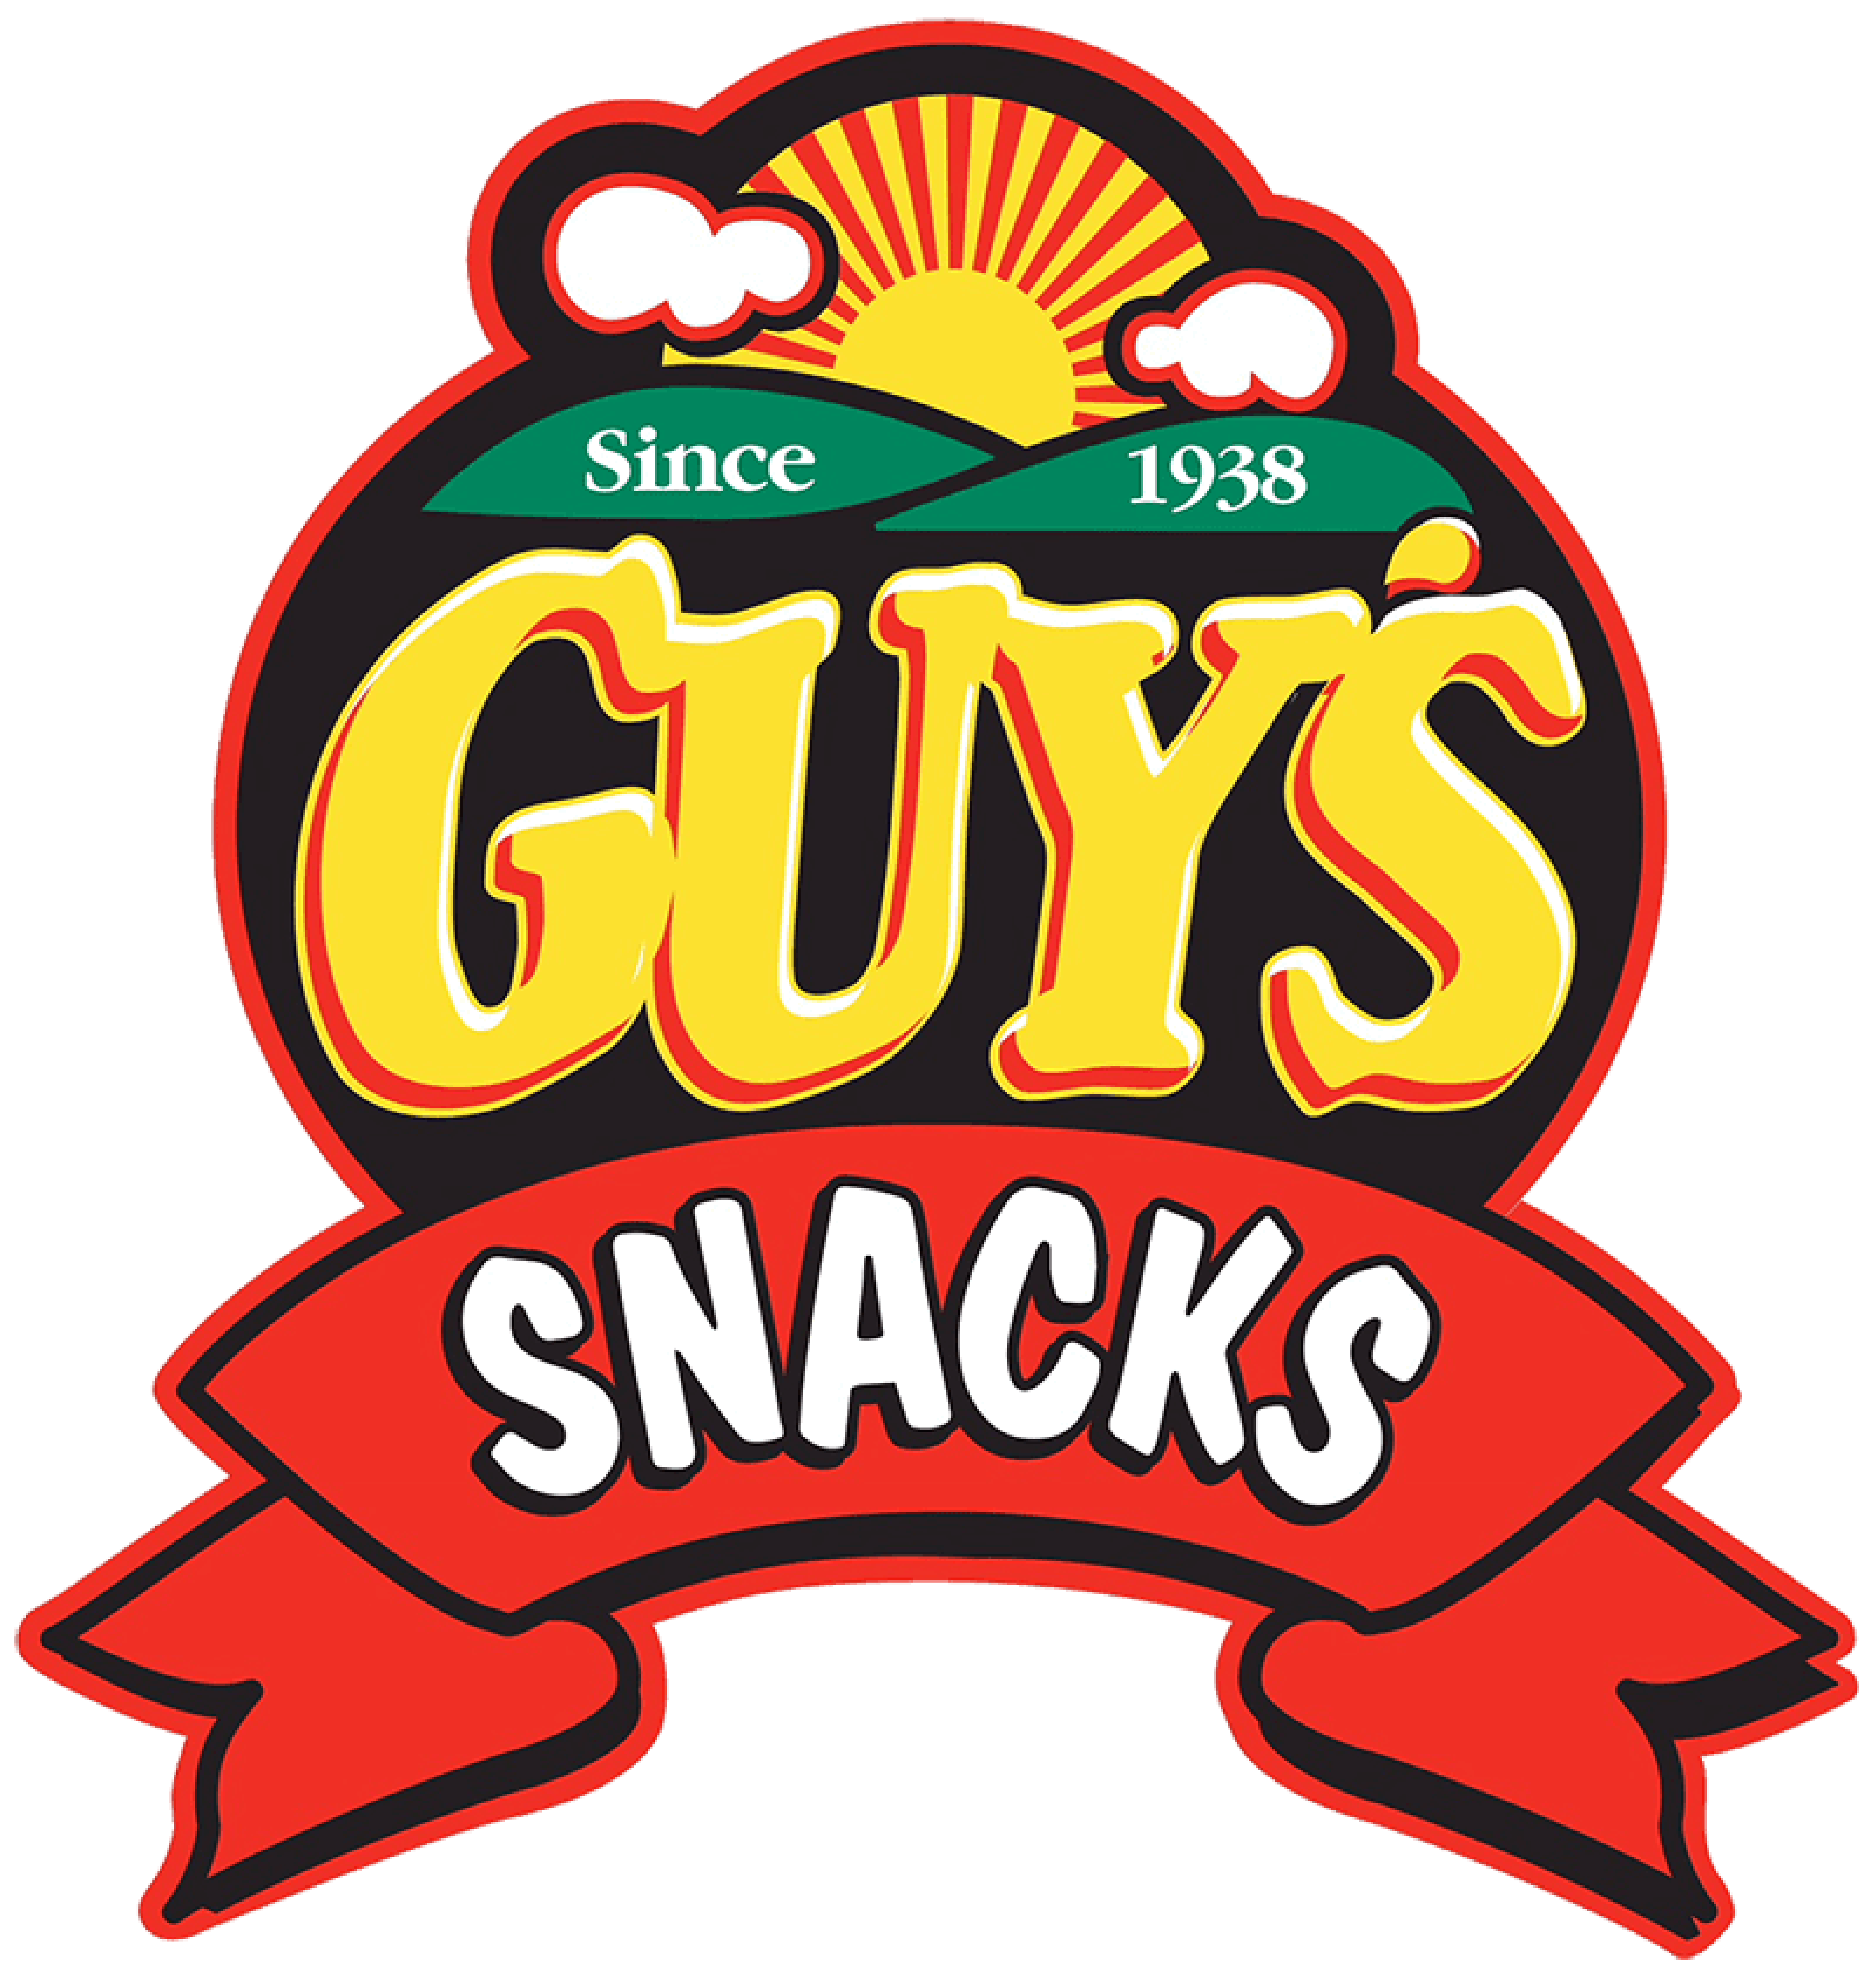 Get Guy's Snacks